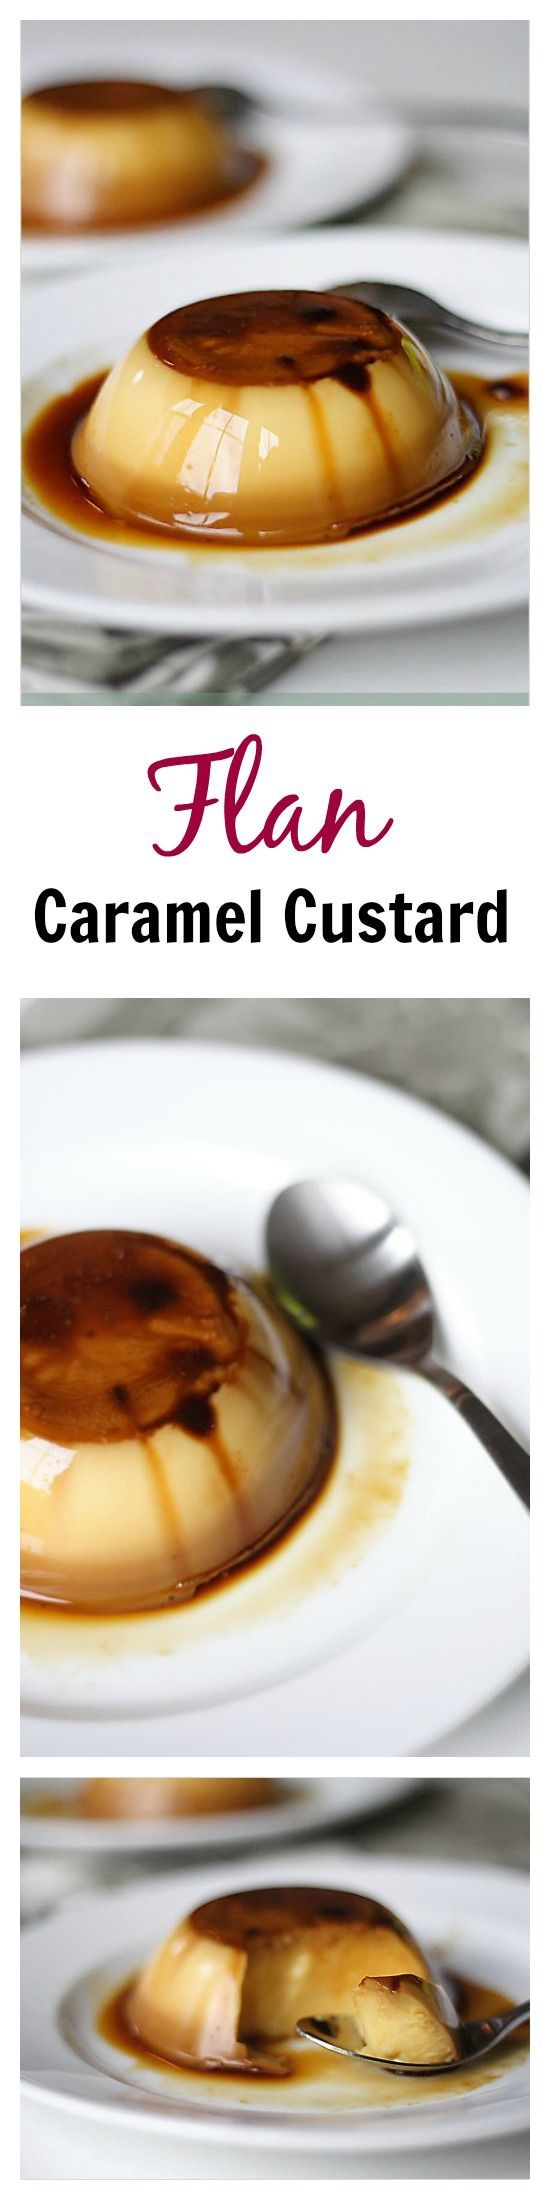 Flan (Crème Caramel) - Flan or caramel custard recipe. Easy, sweet, silky smooth egg custard with caramel sauce. SO YUMMY | rasamalaysia.com